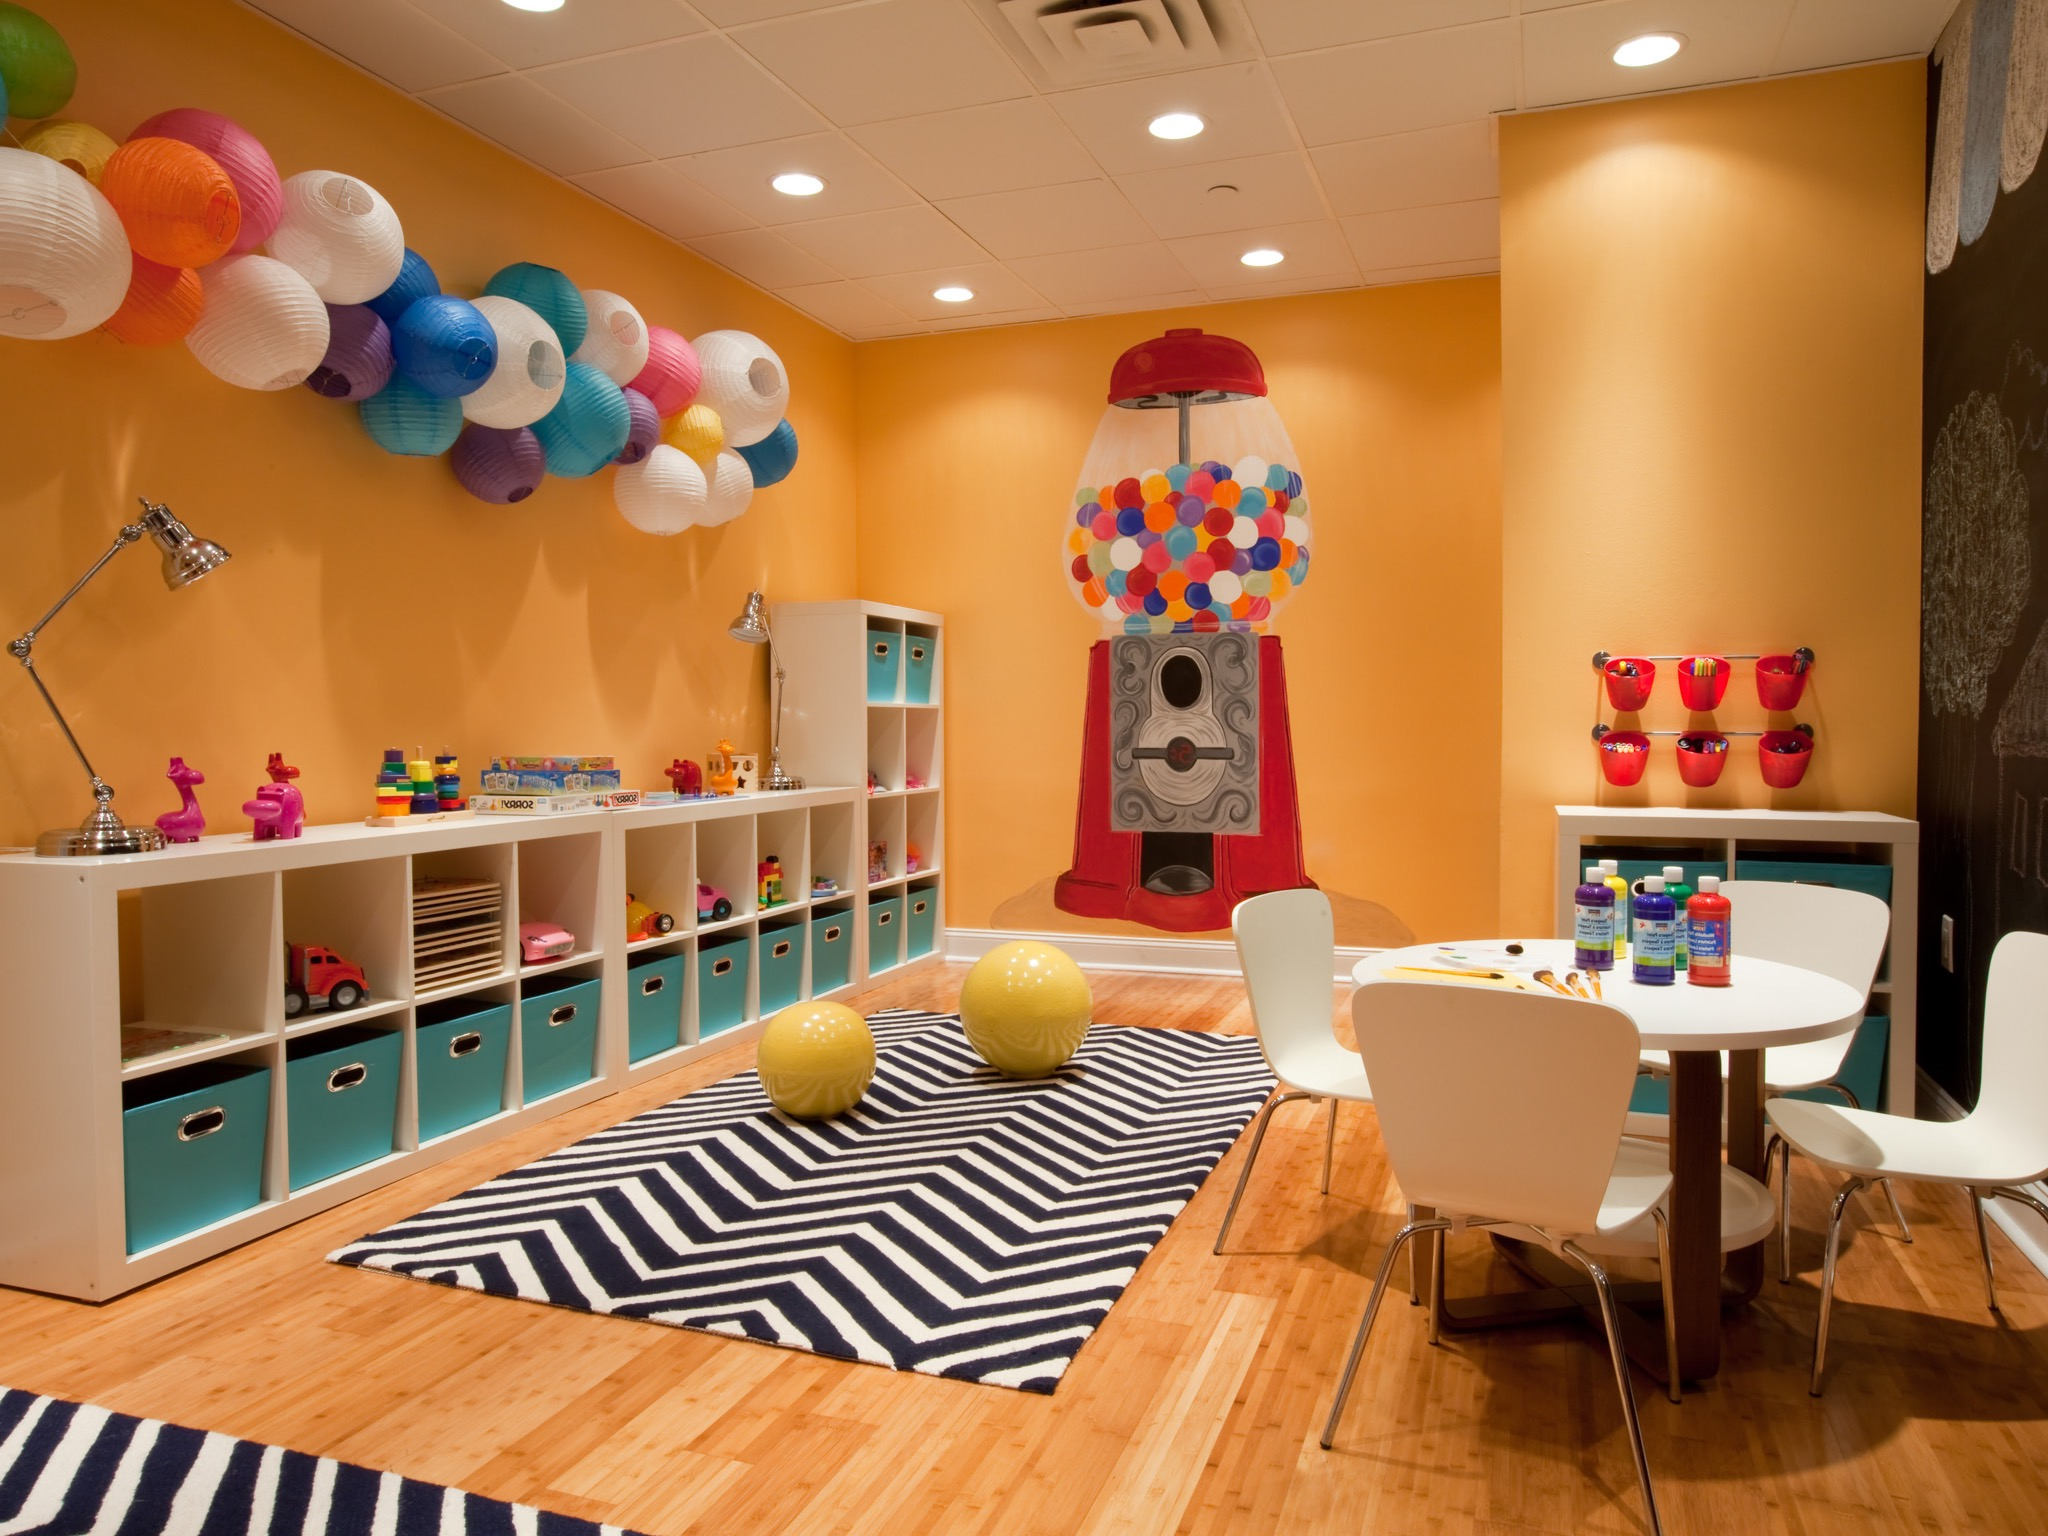 Colorful Playroom With Wall Chalkboard And Chevron Rug (Image 8 of 30)